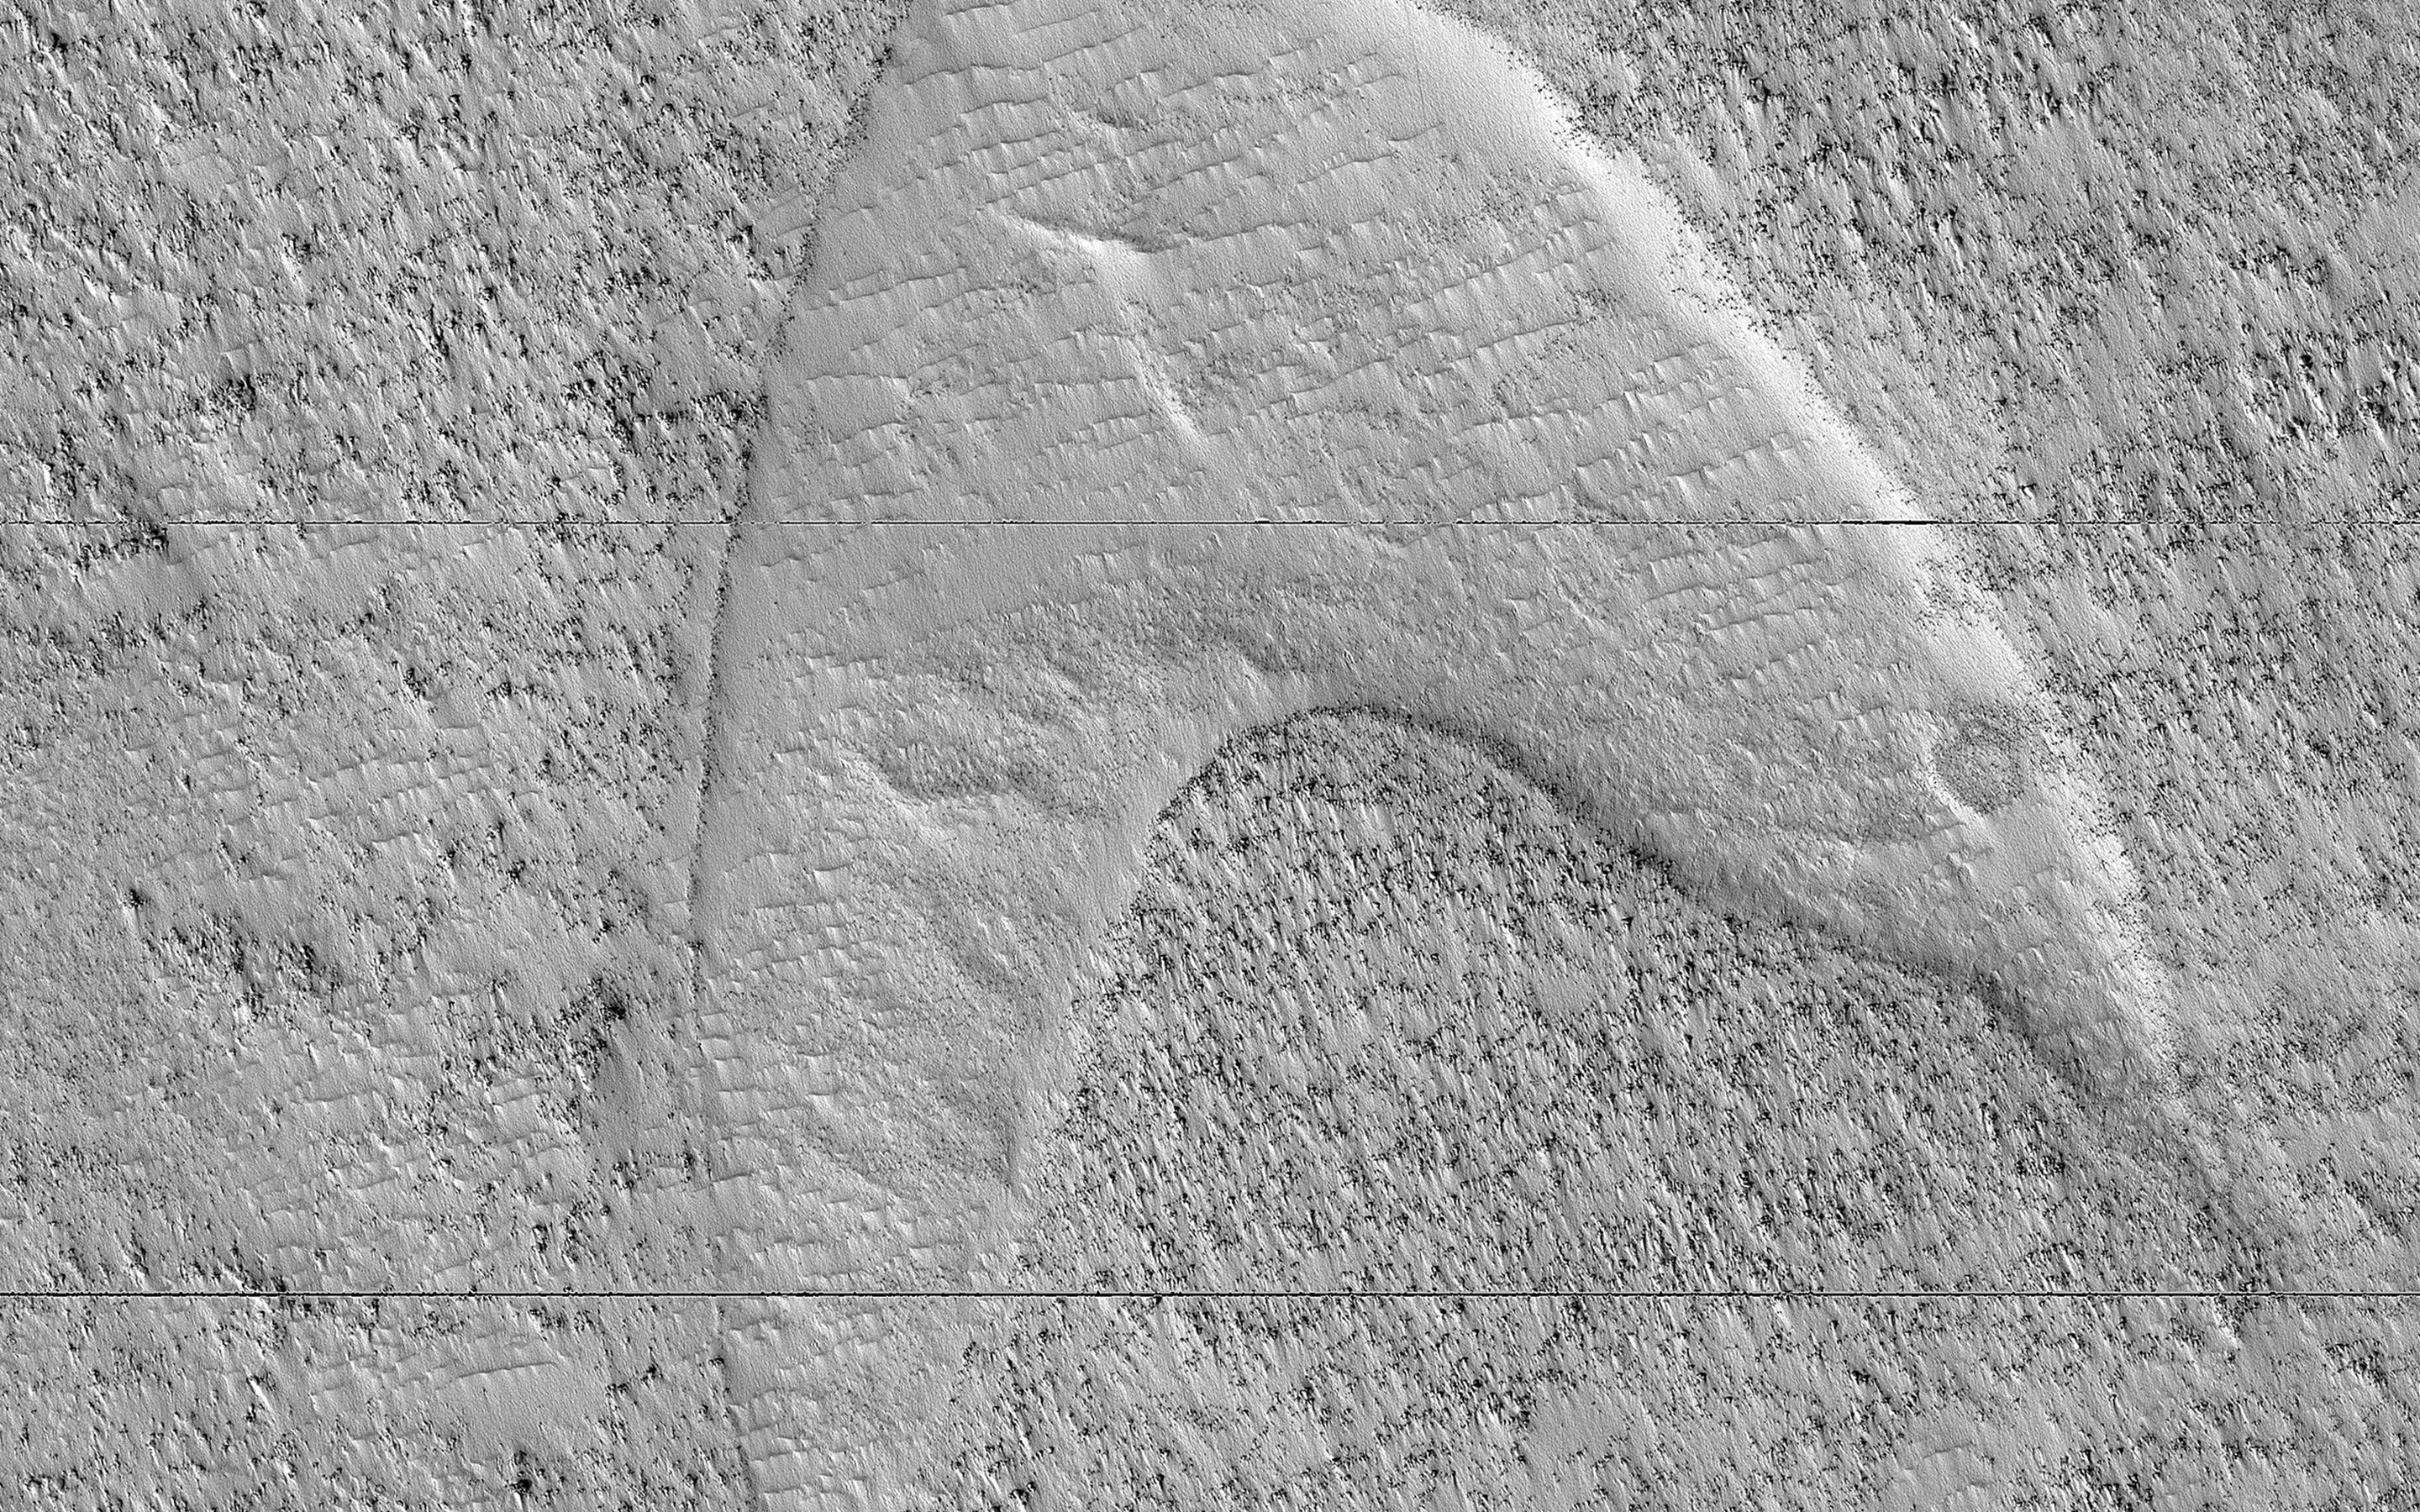 This image, acquired on April 22, 2019 by NASAs Mars Reconnaissance Orbiter, shows curious chevron shapes in southeast Hellas Planitia which are the result of a complex story of dunes, lava, and wind.